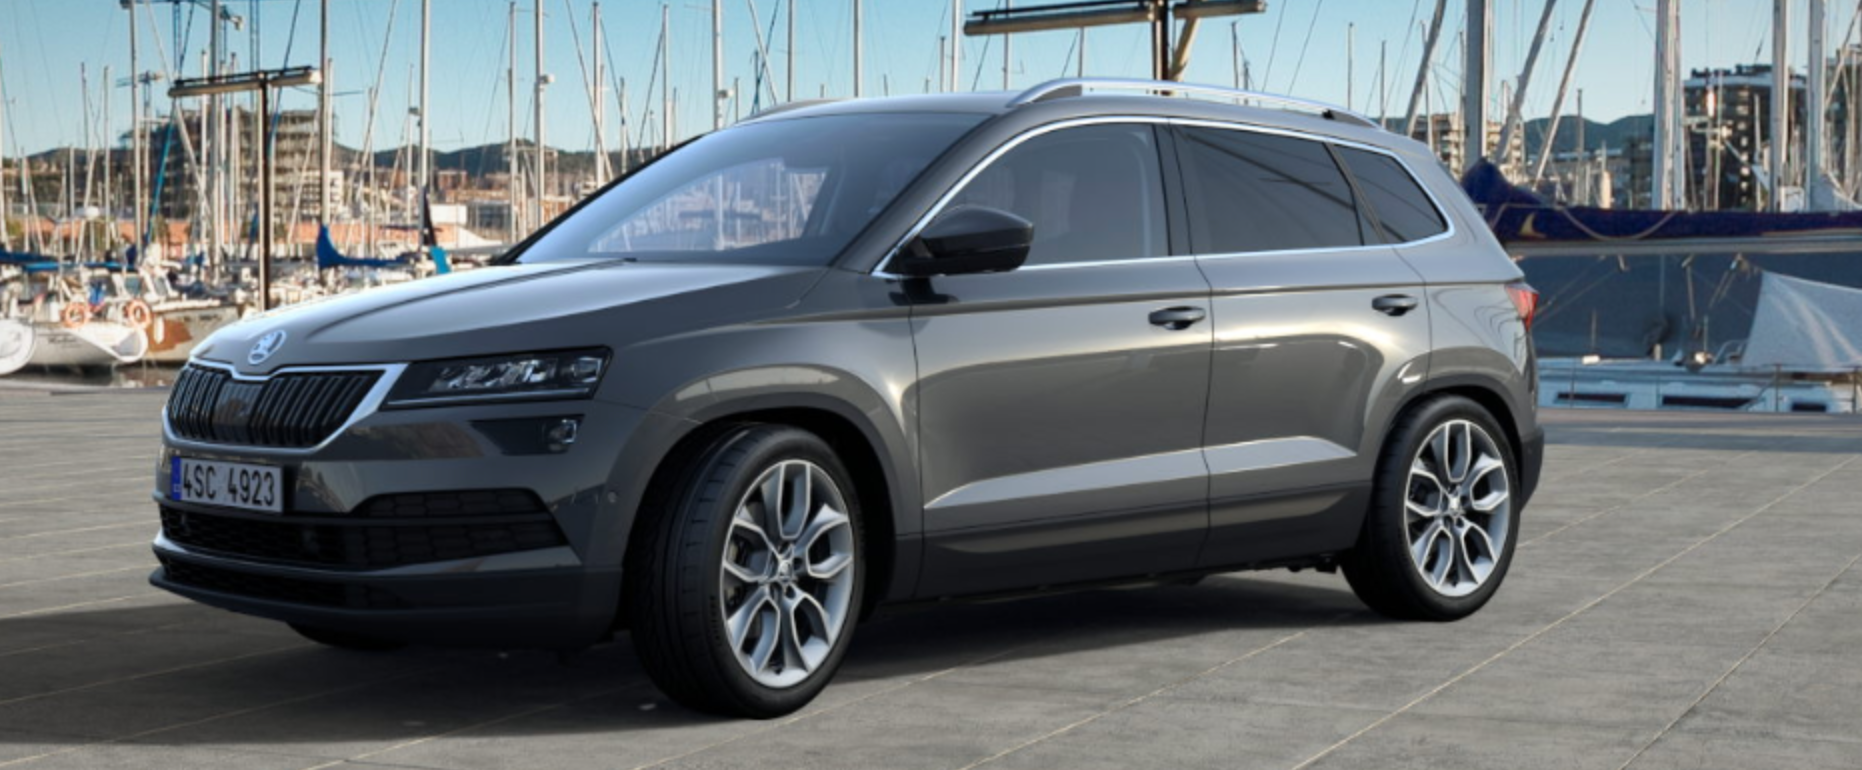 Metallic Car Paint Colours >> Skoda Karoq colours guide and prices | carwow